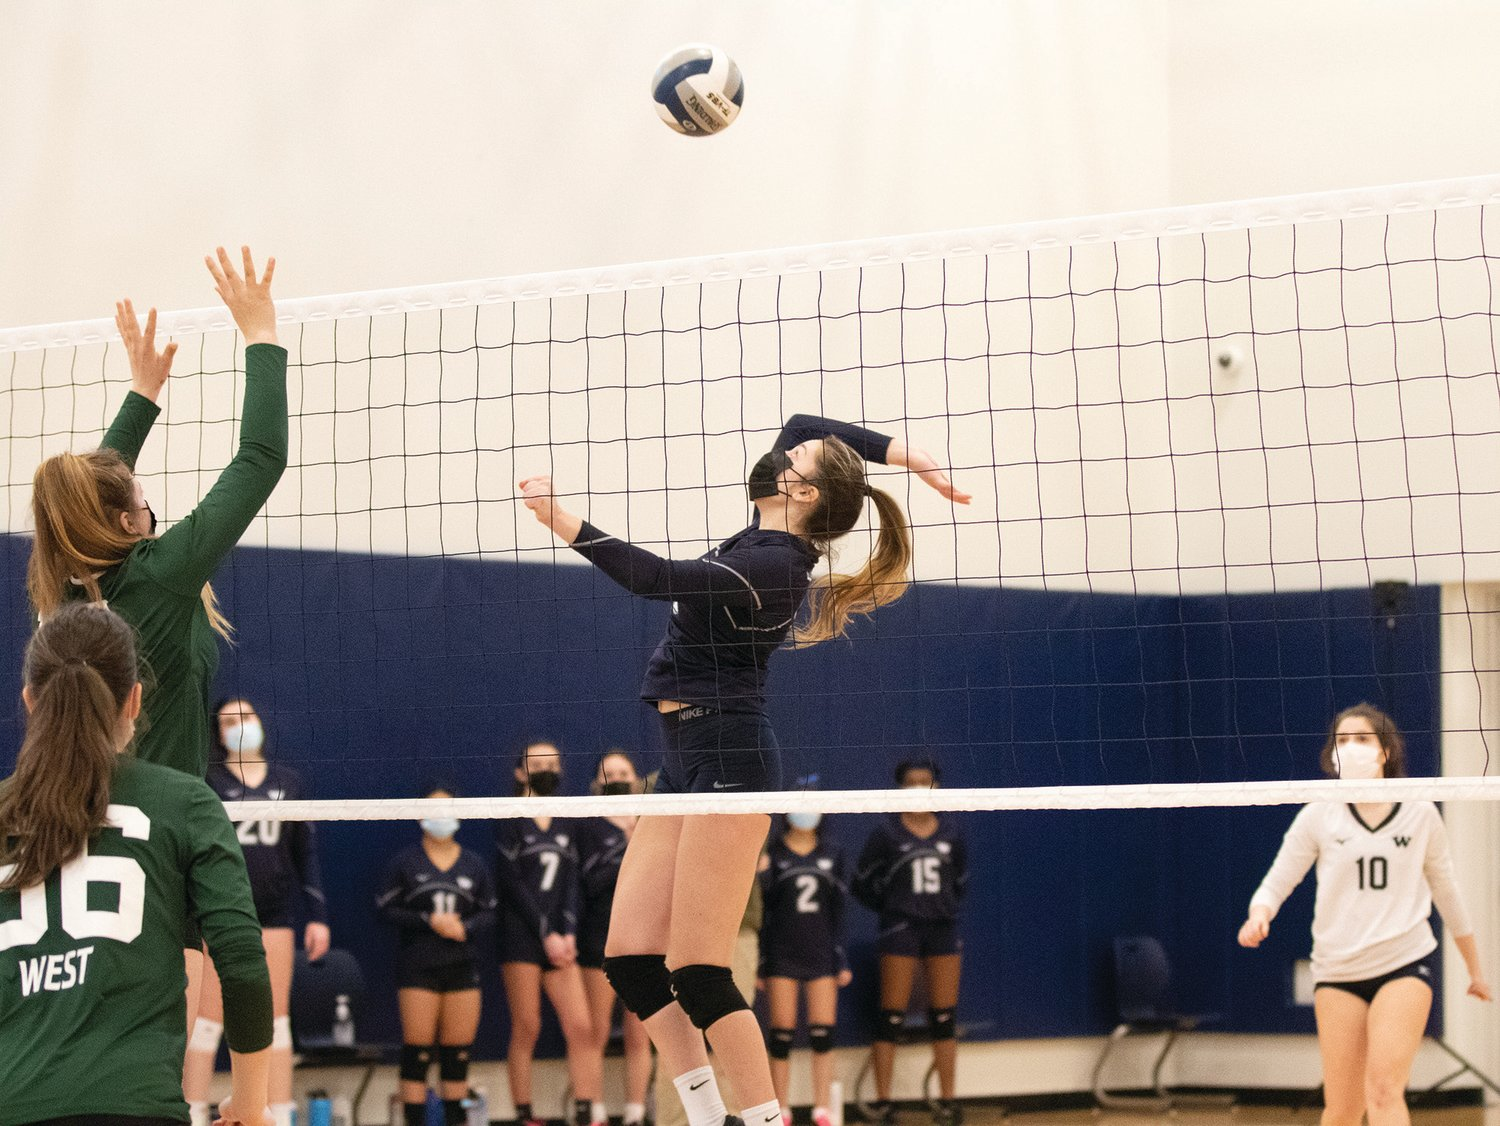 Kaline Natcheva jumps to spike the ball against Sturgis West